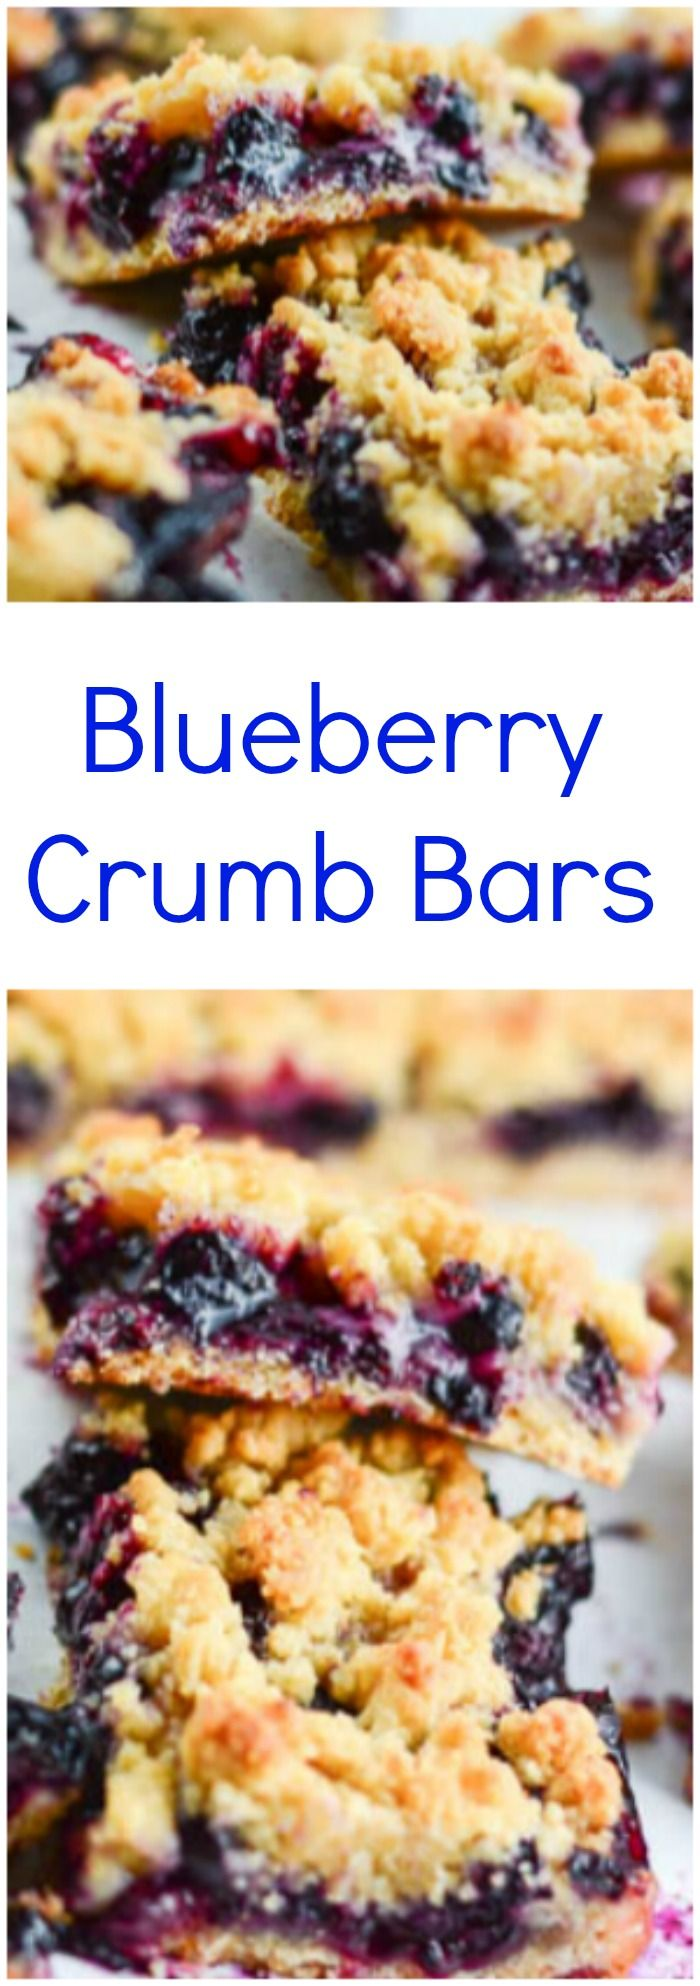 Blueberry Crumb Bars | Recipe | Blueberries, Bar and ...